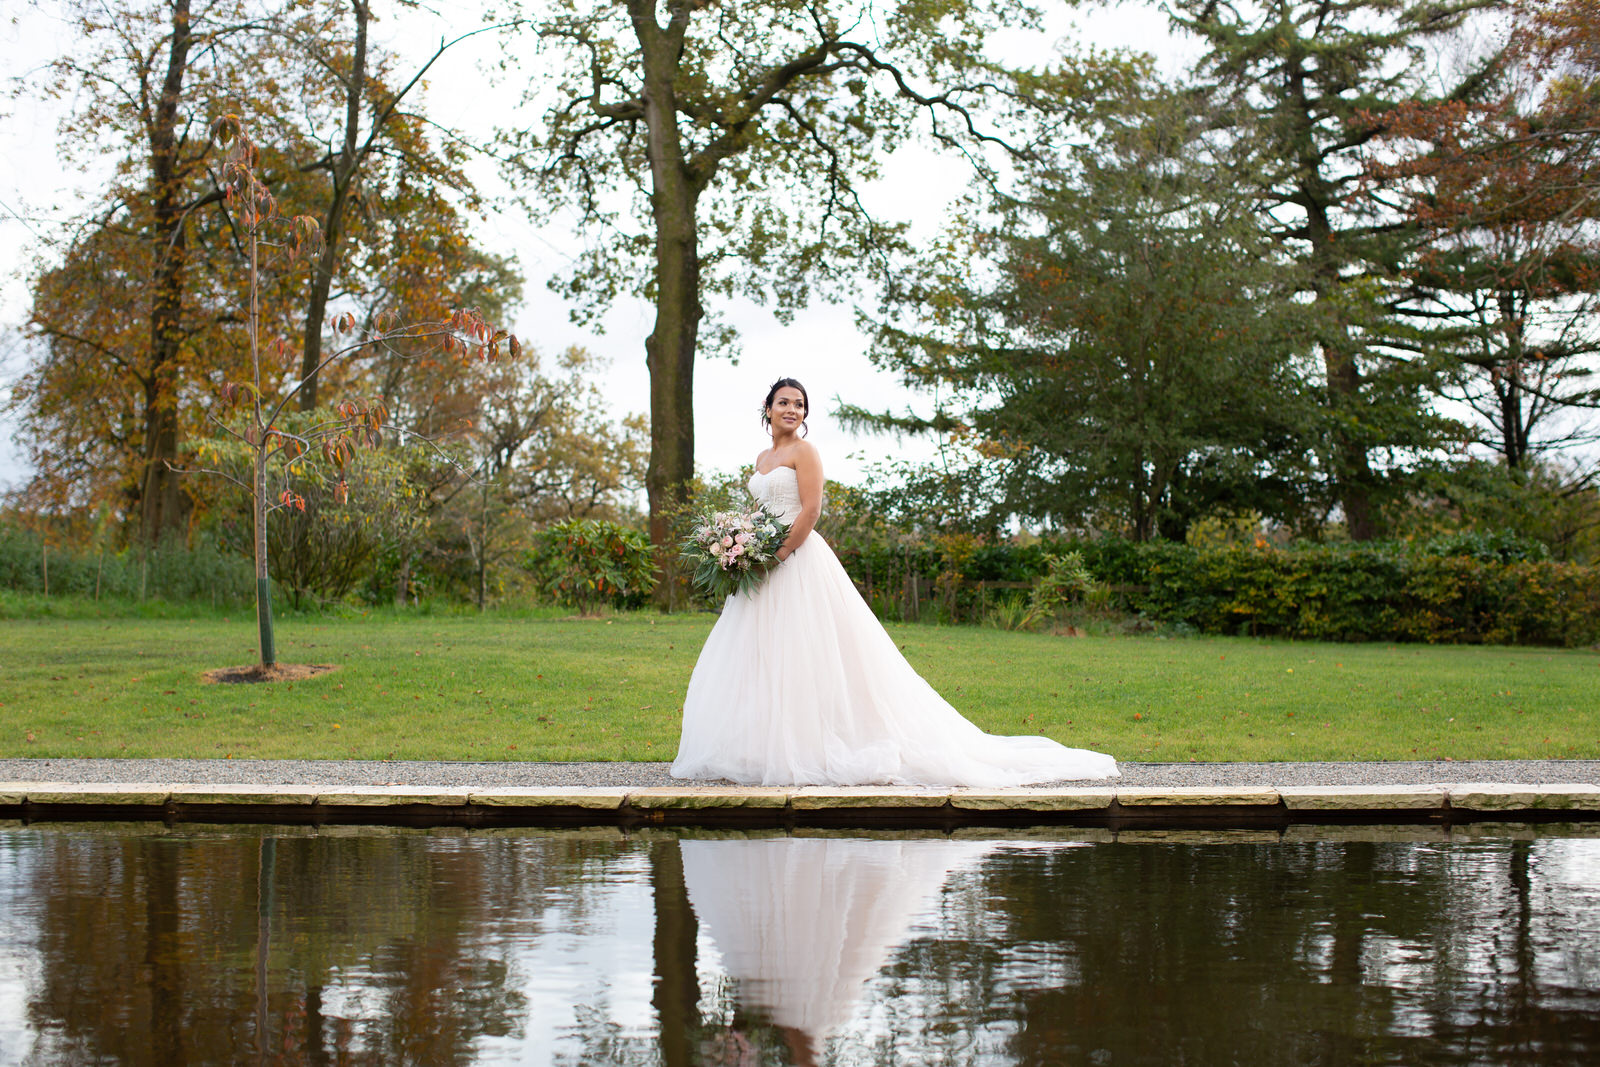 bride walks beside ceremony lily pond at Browsholme